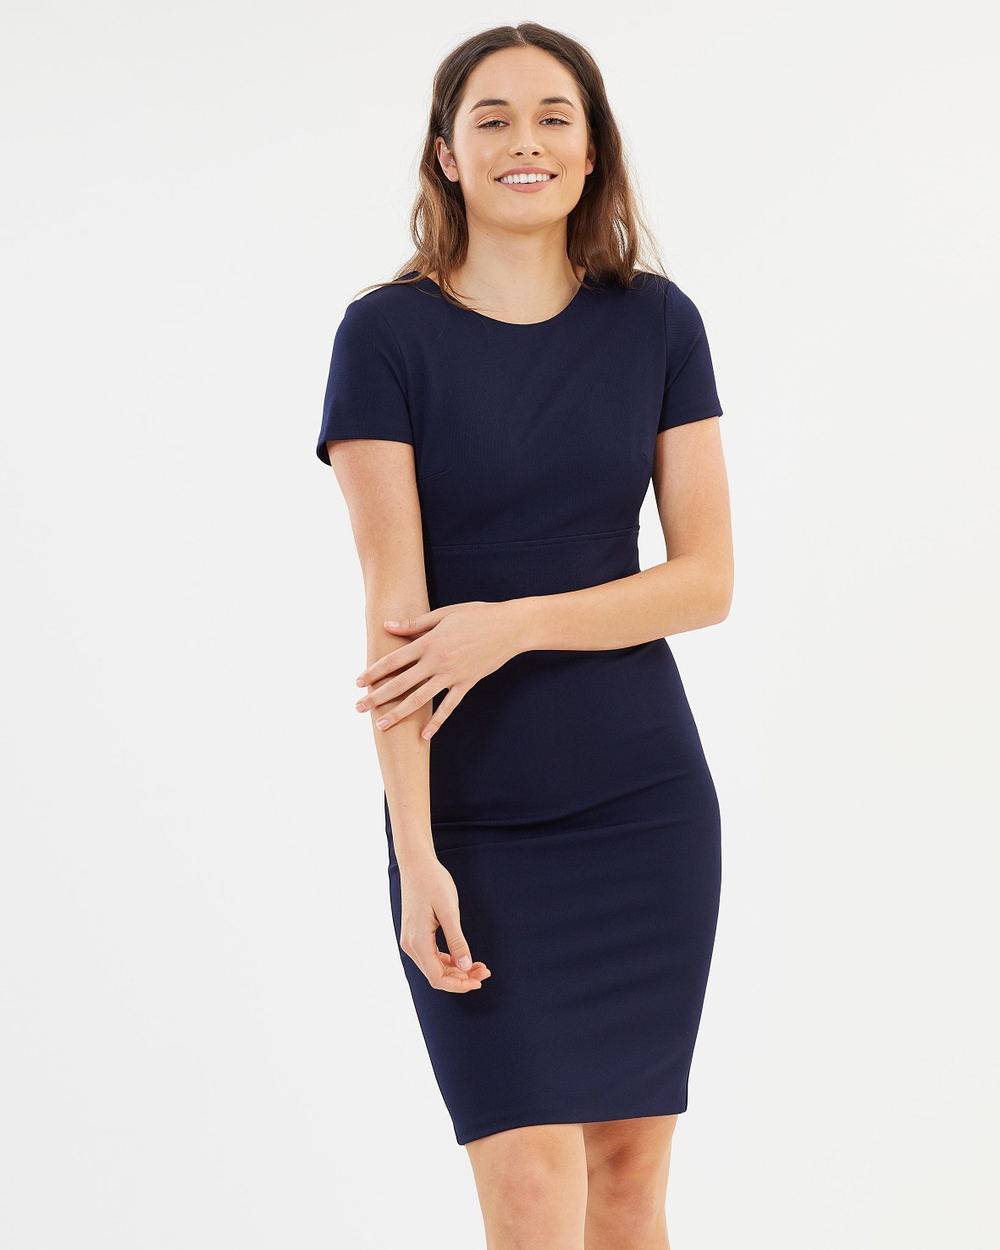 Dorothy Perkins Waistband Pencil Dress Dresses Blue Waistband Pencil Dress